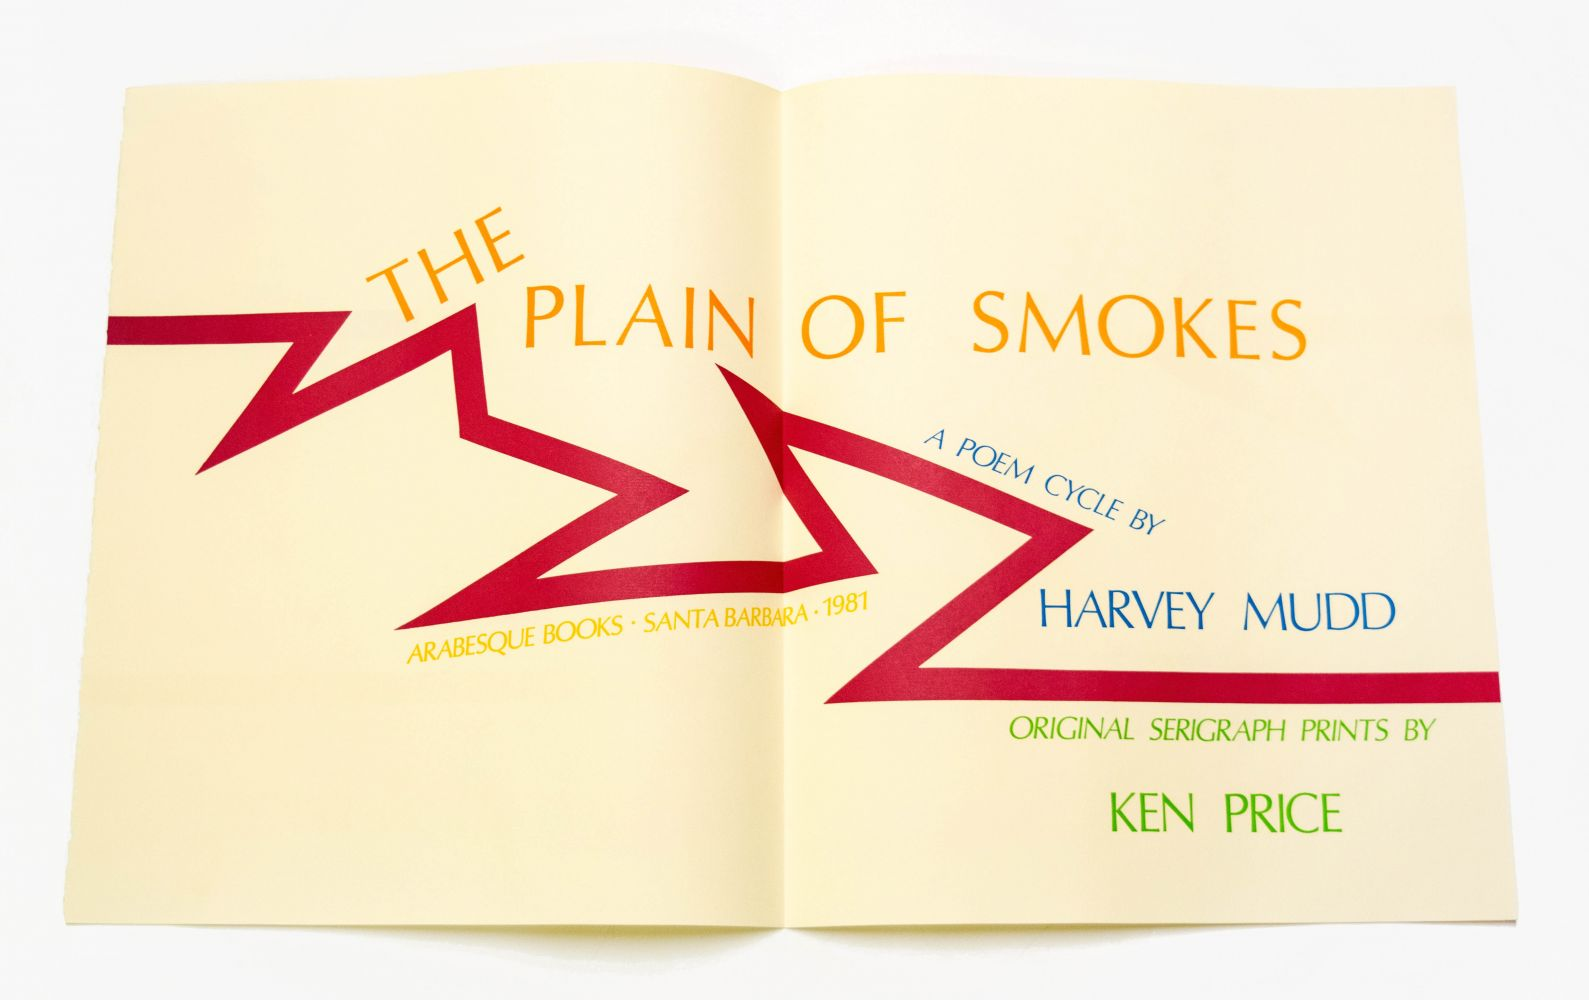 Kenneth Price and Harvey Mudd Plain of Smokes, 1981